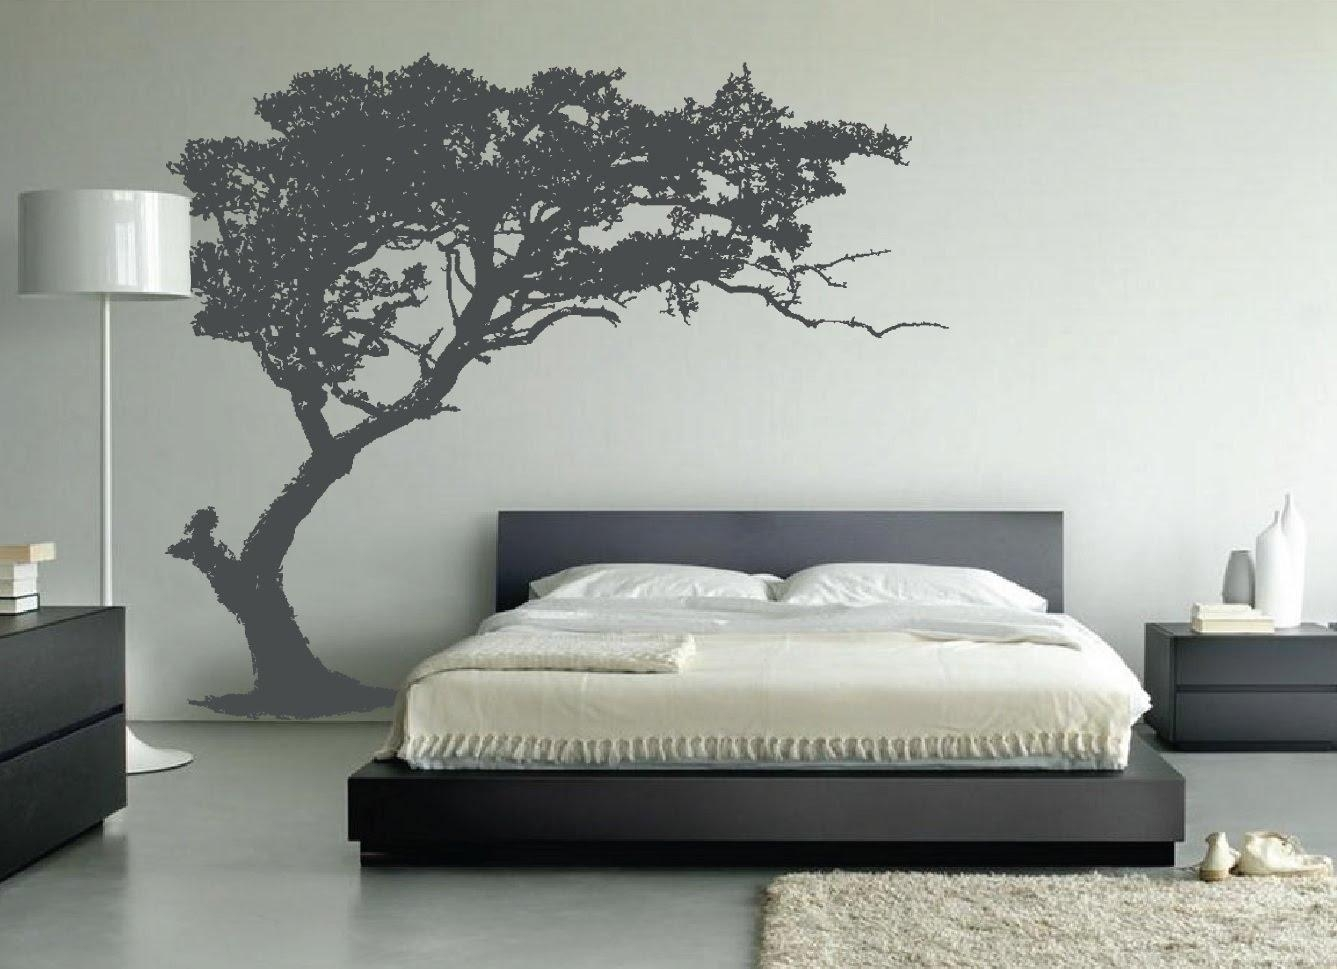 Bedroom Wall Decor~Bedroom Wall Decor Above Bed – Youtube With Regard To Wall Art Over Bed (Image 8 of 20)